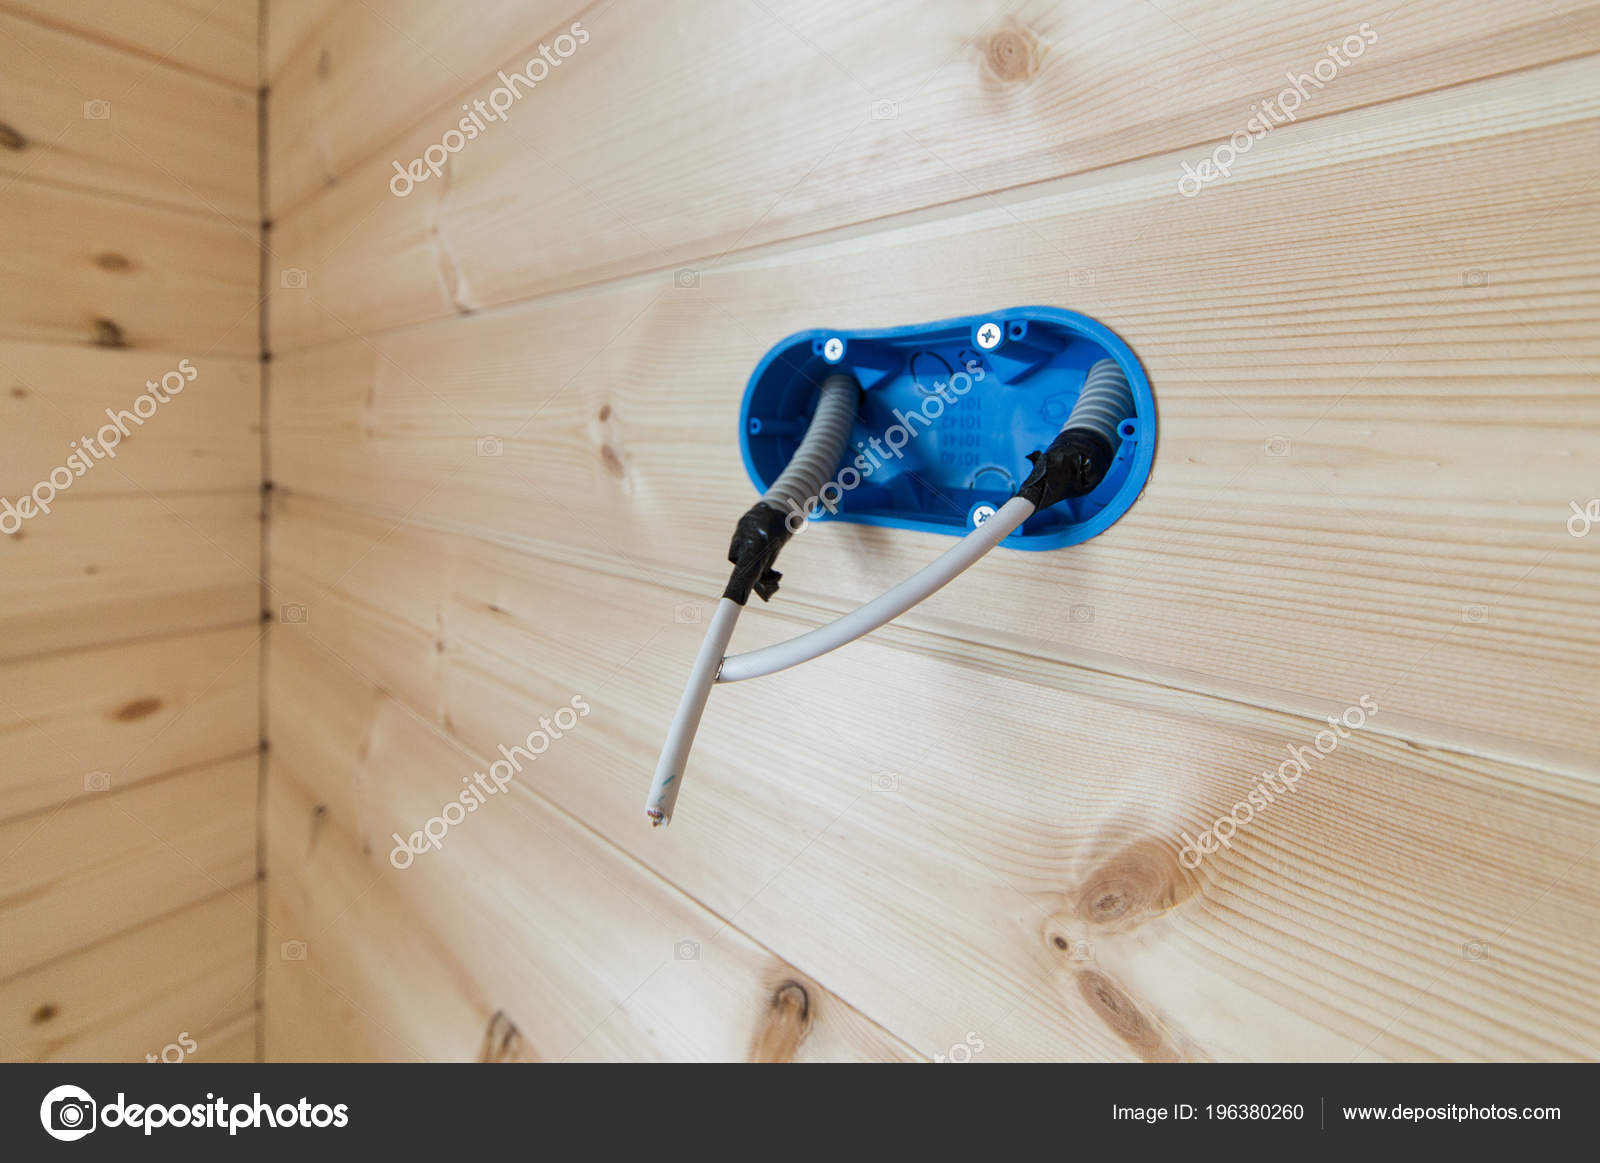 Blue Hood Wall Outlet Switch Protruding Insulated Wire Electric Basic House Wiring Outlets A In The For An Or With Wooden Photo By Endewer1mailru